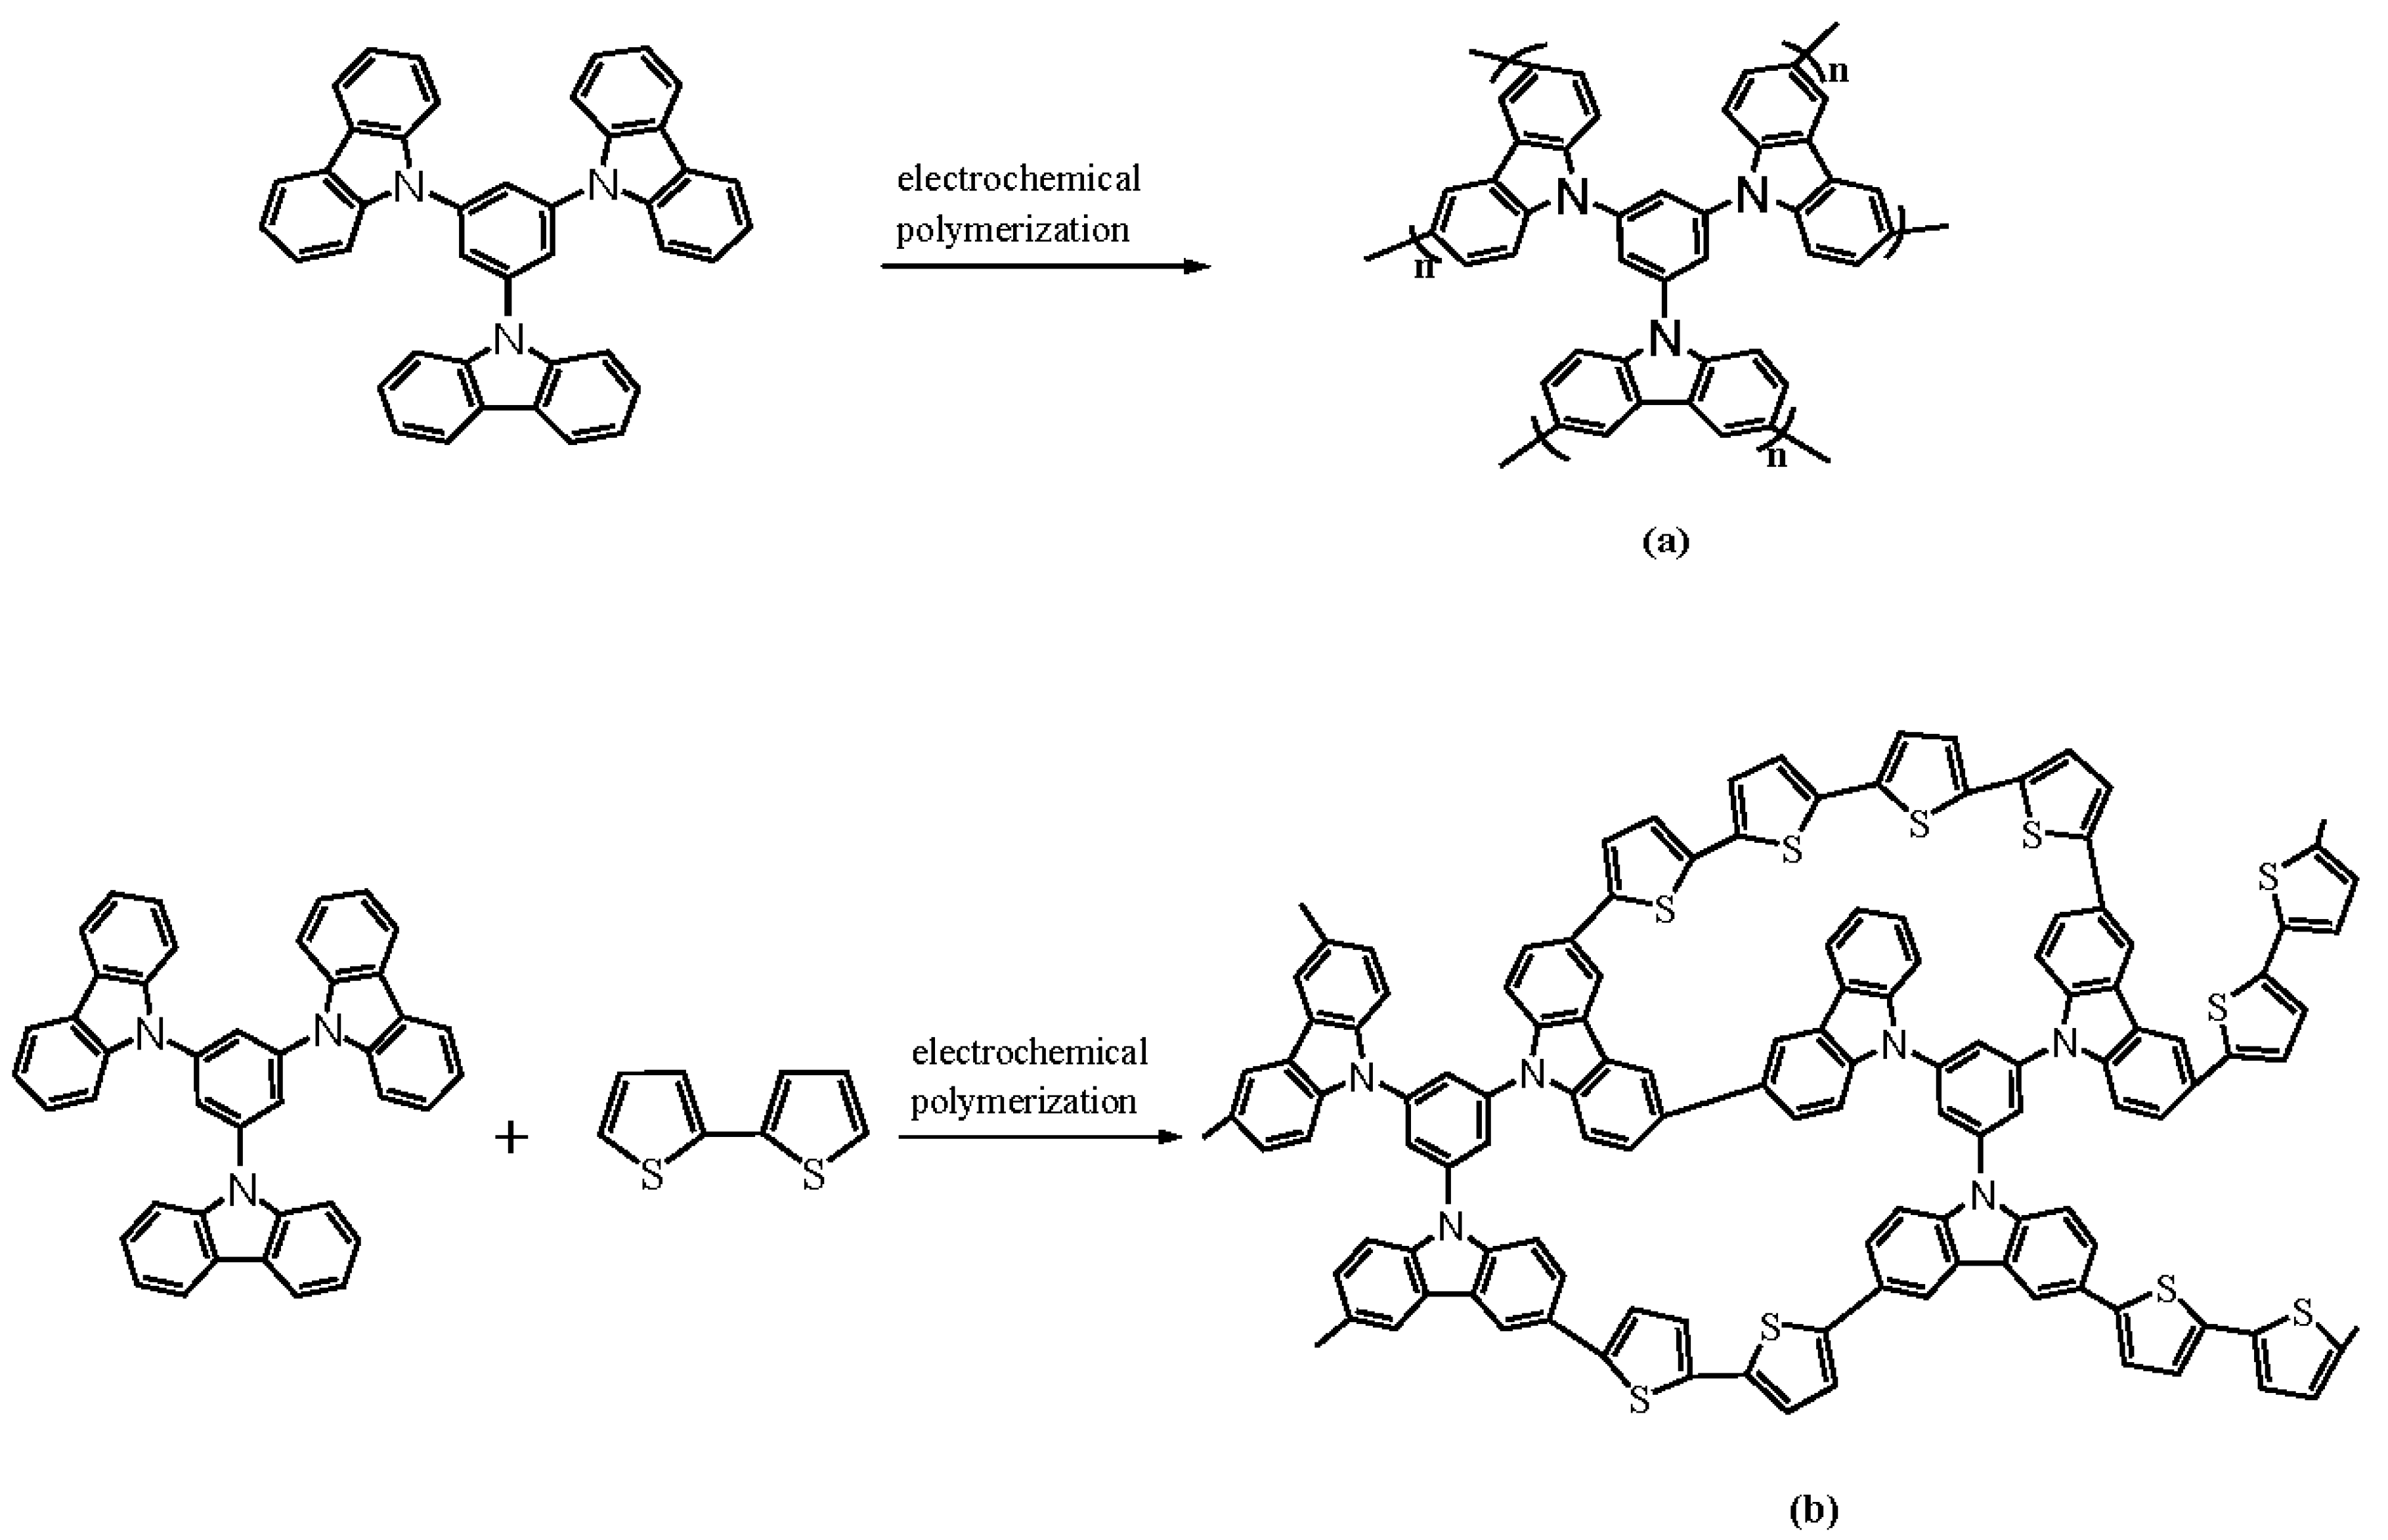 Polymers | Free Full-Text | Electrosynthesis of Copolymers Based on on